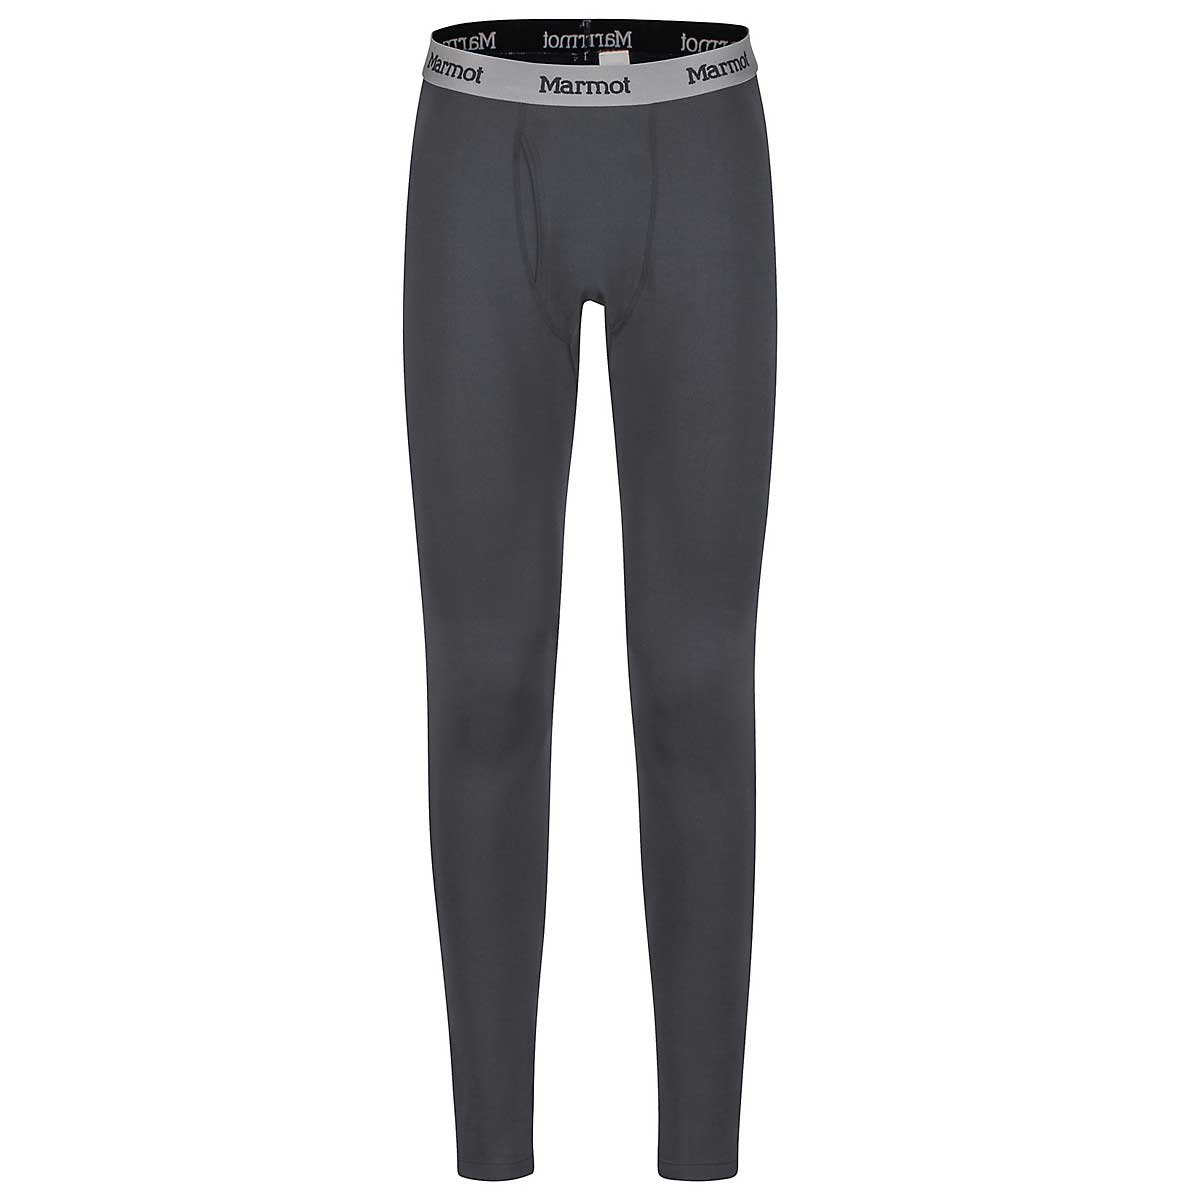 Marmot Men's Midweight Harrier Tight in Black